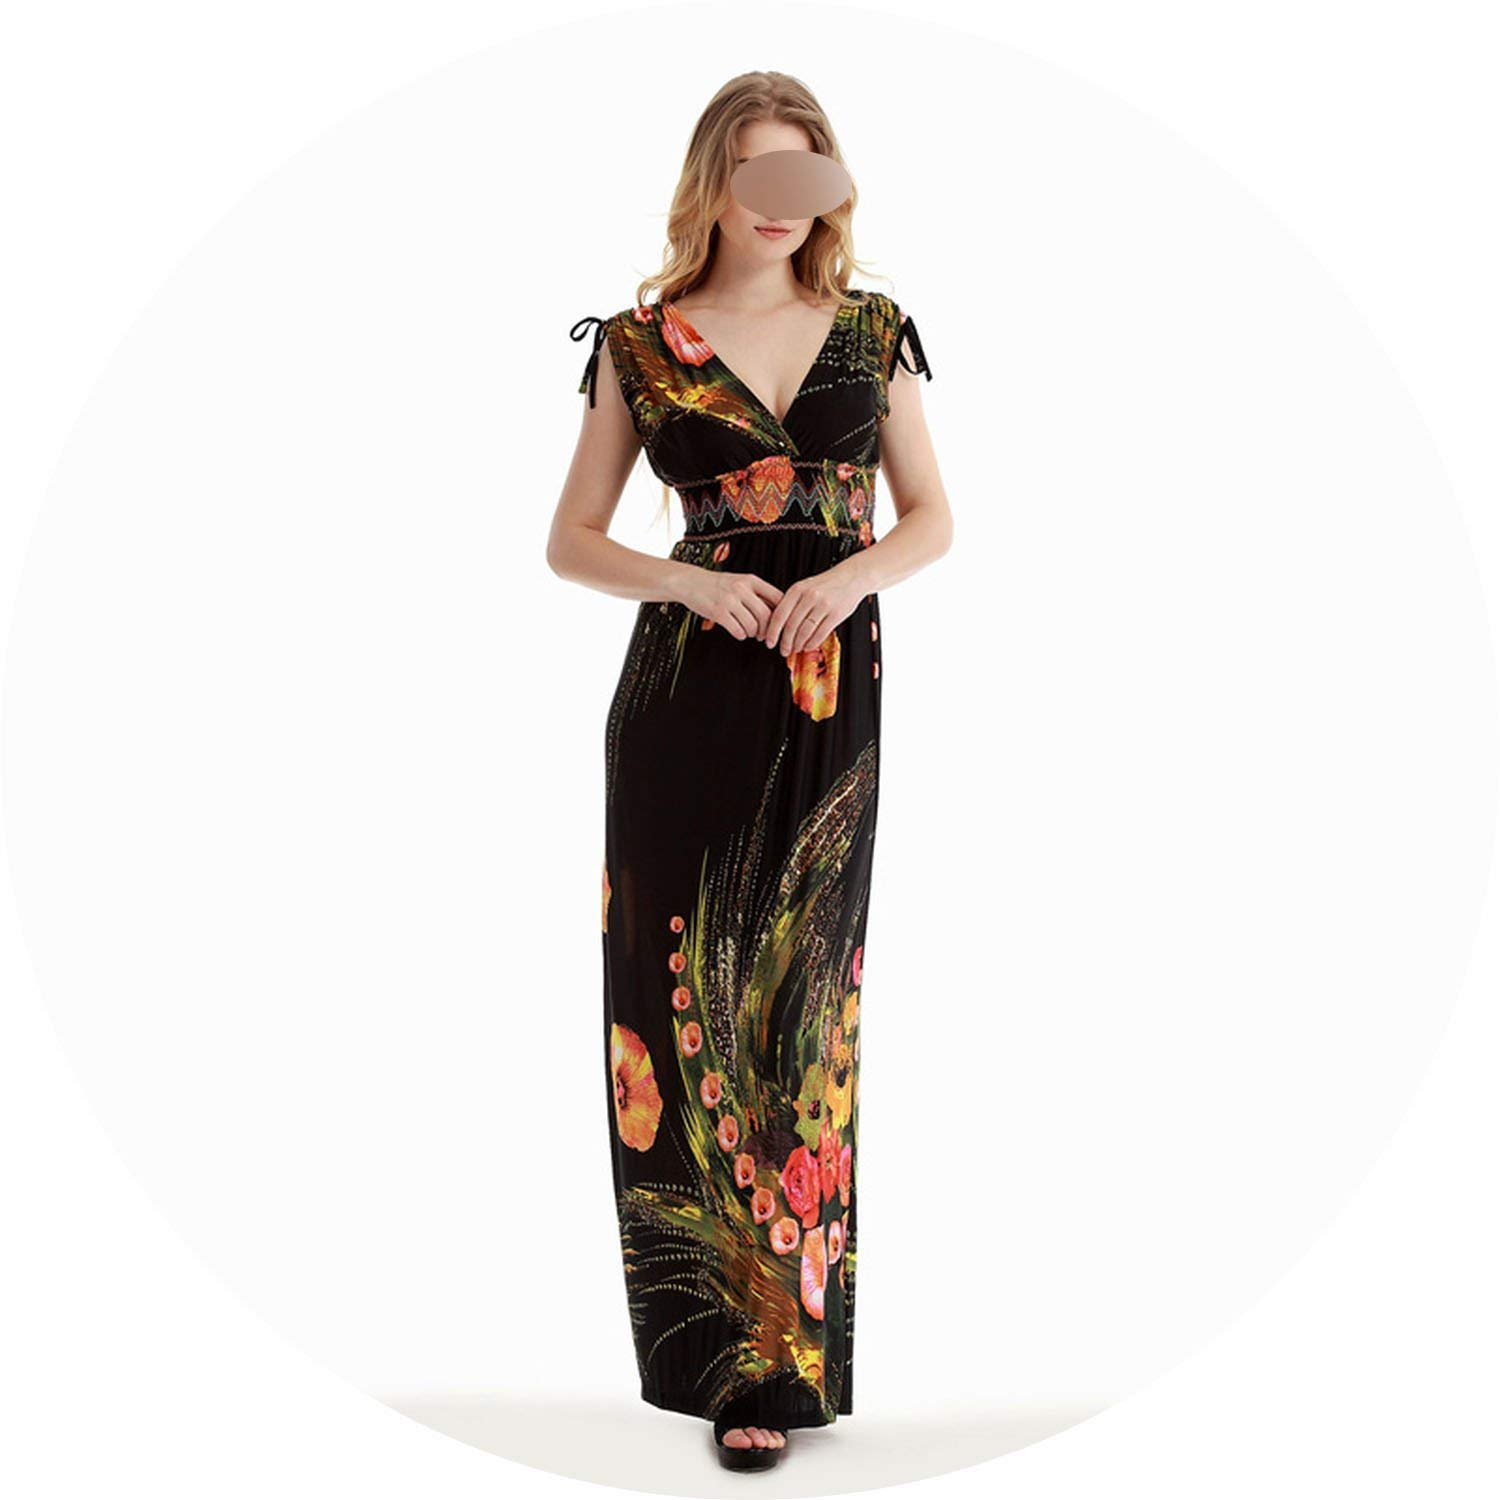 Black Women's Maxi Dresses Summer Elegant Robe Top Selling Long Dress Plus Size Boho Vestido